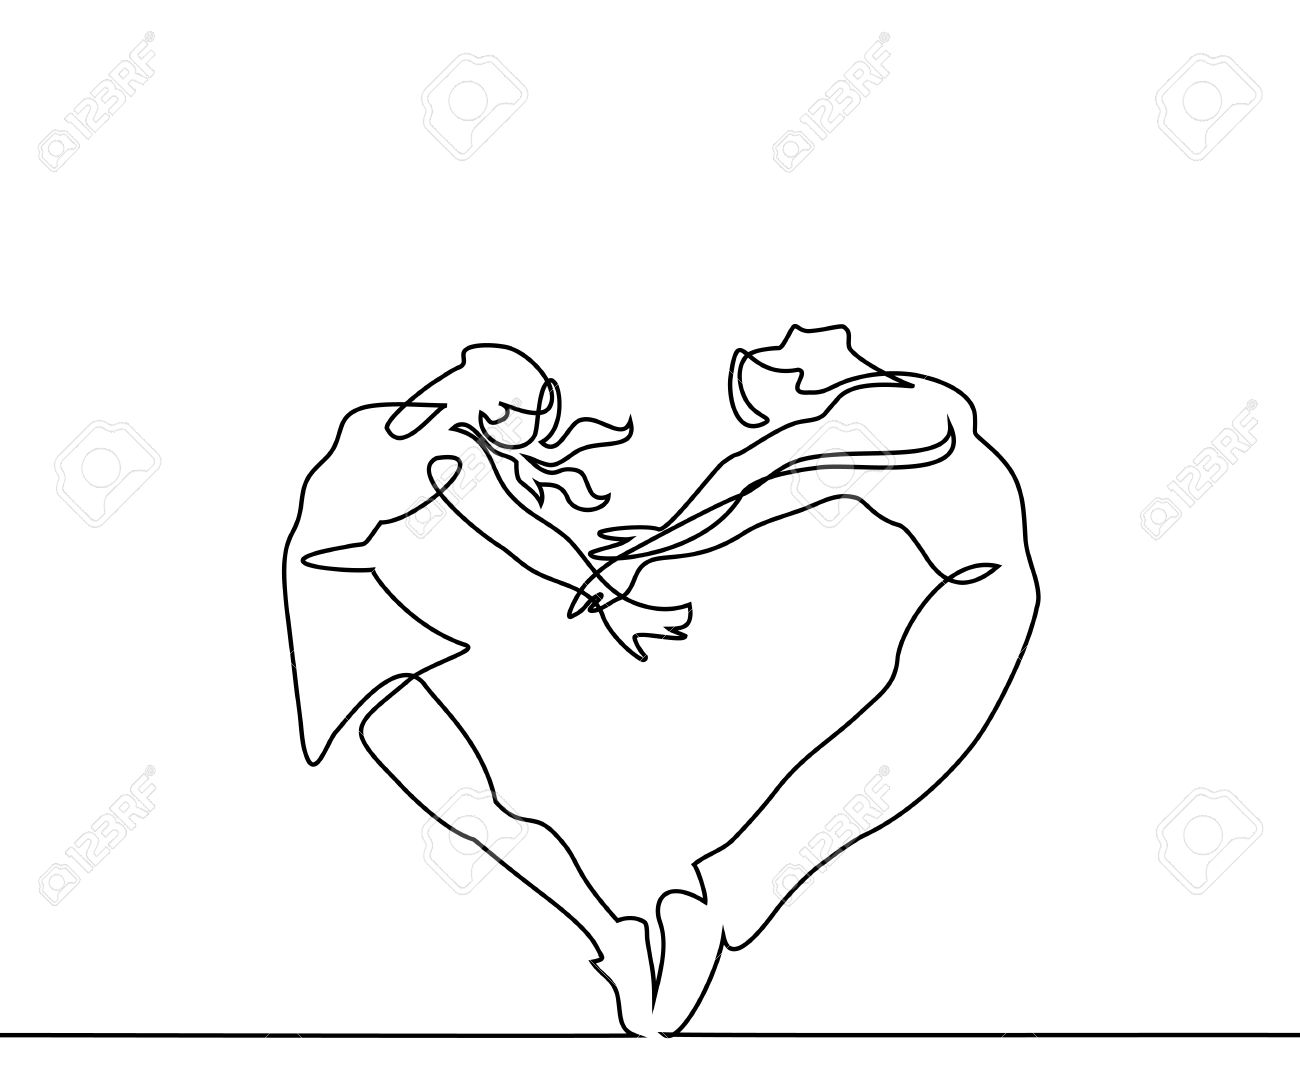 1300x1083 Continuous Line Drawing. Two People Couple Make Heart In Jump